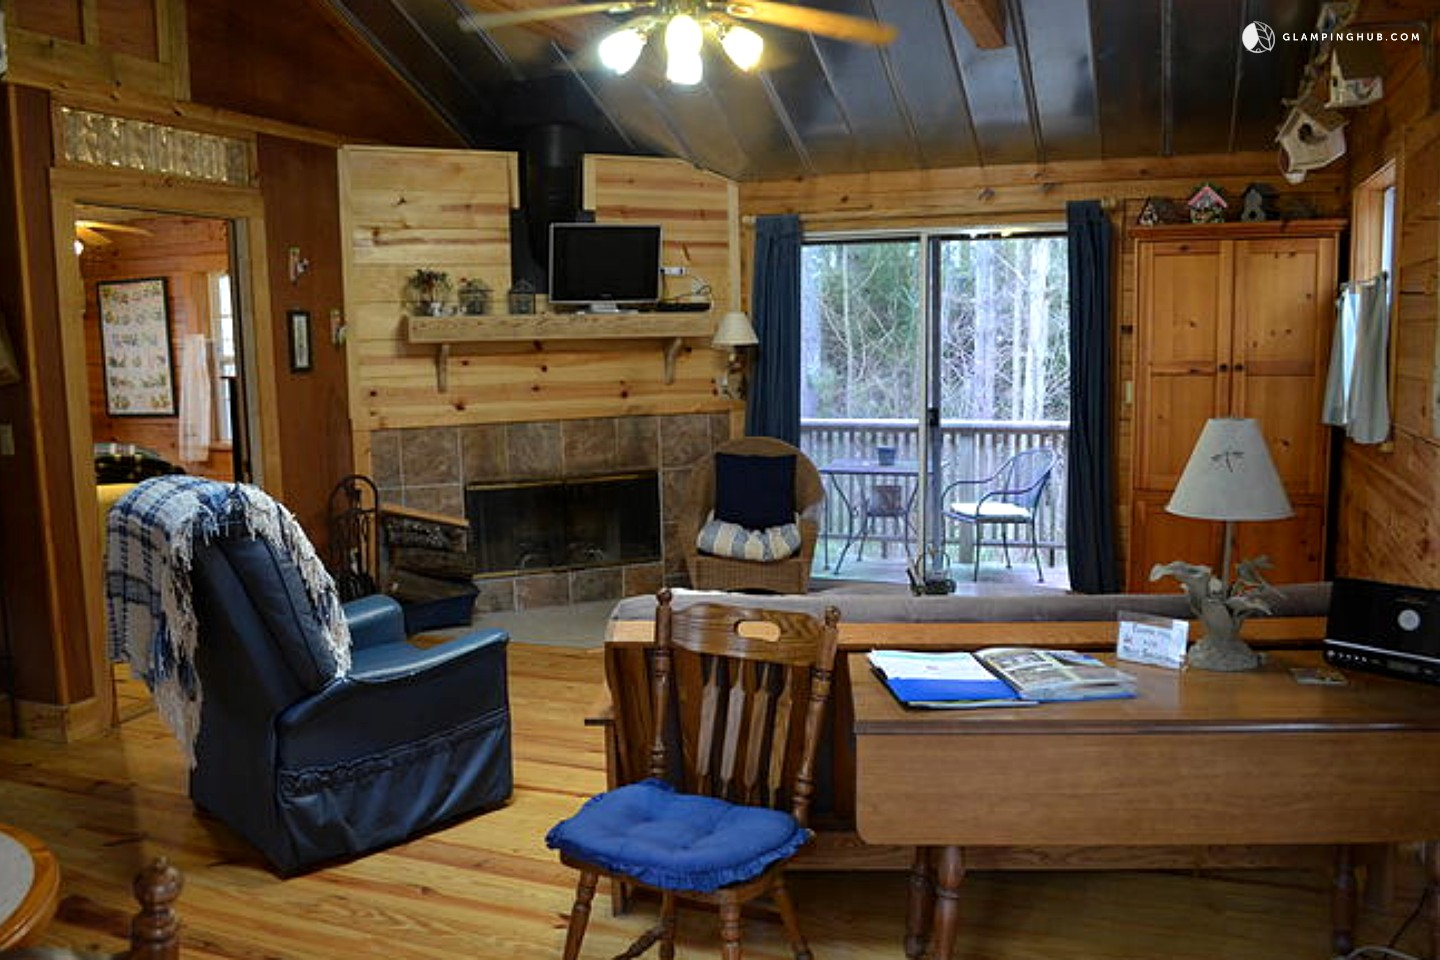 Log cabin rental near asheville north carolina for Asheville nc luxury cabin rentals